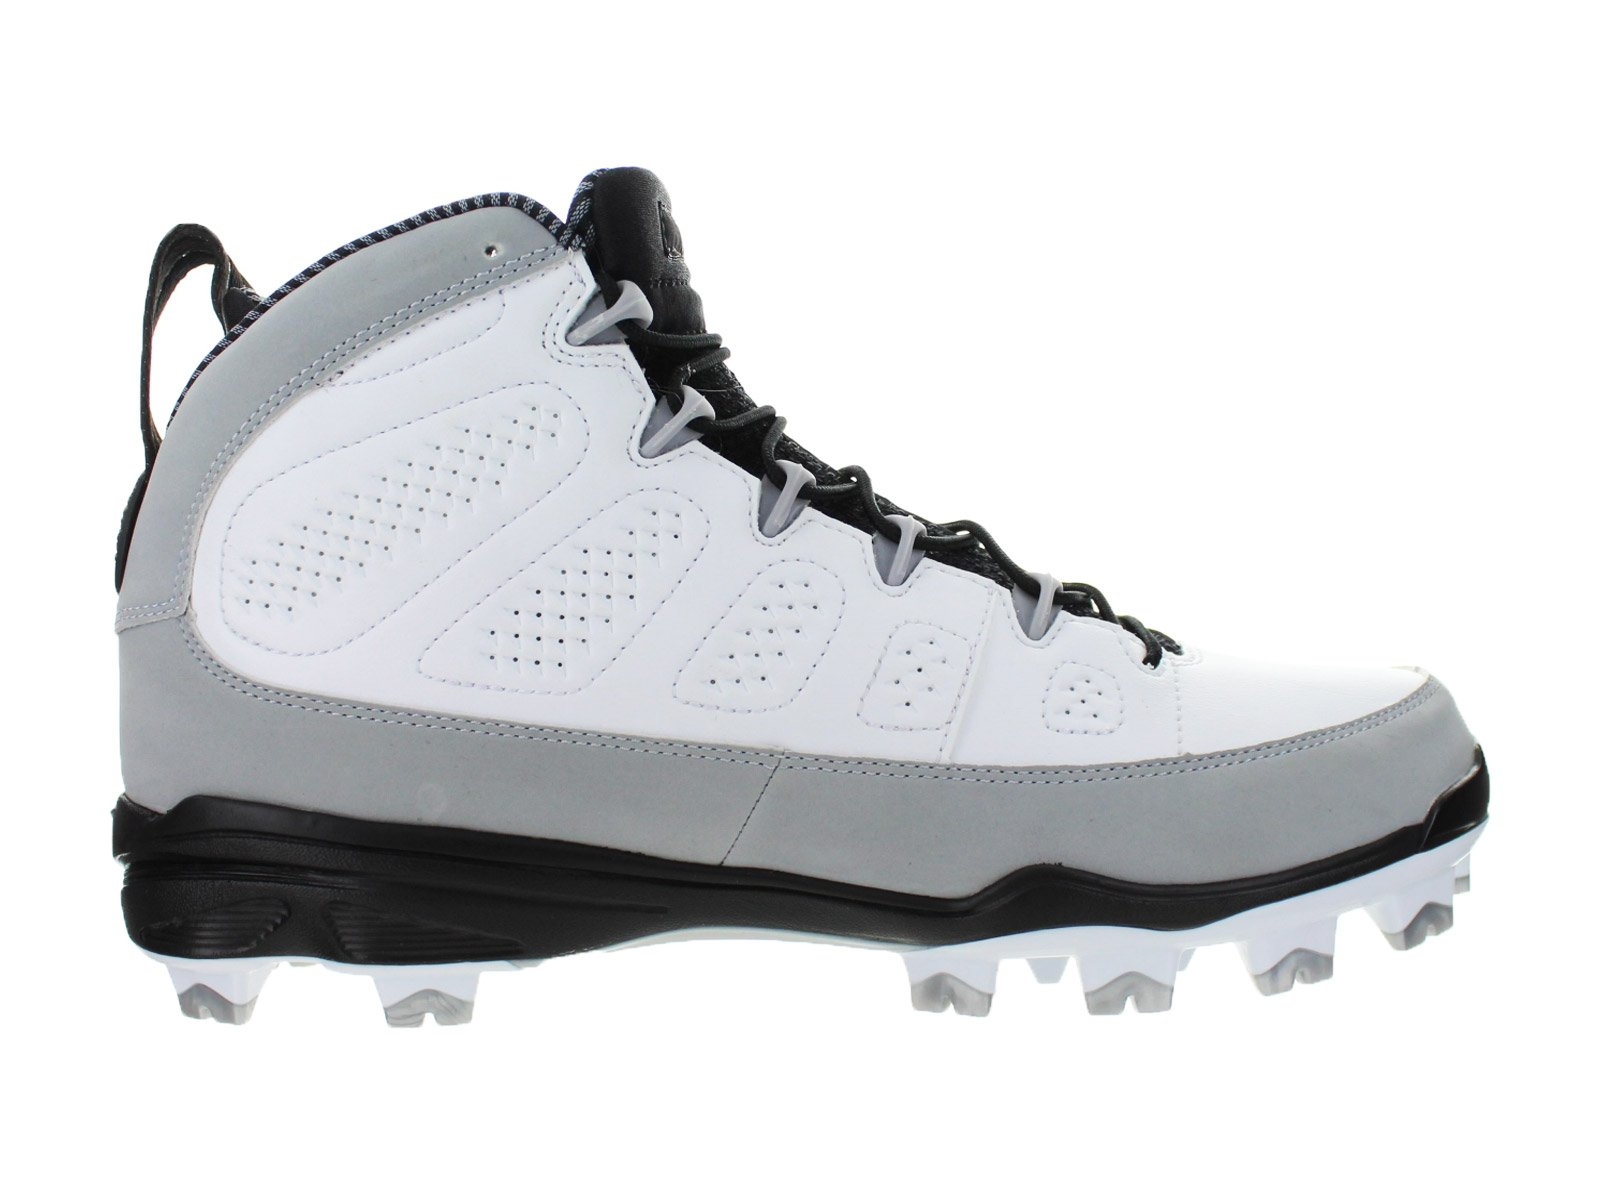 new product bbe49 1f656 ... france air jordan mens air jordan 9 ix retro mcs re2pect baseball  cleats white wolf grey